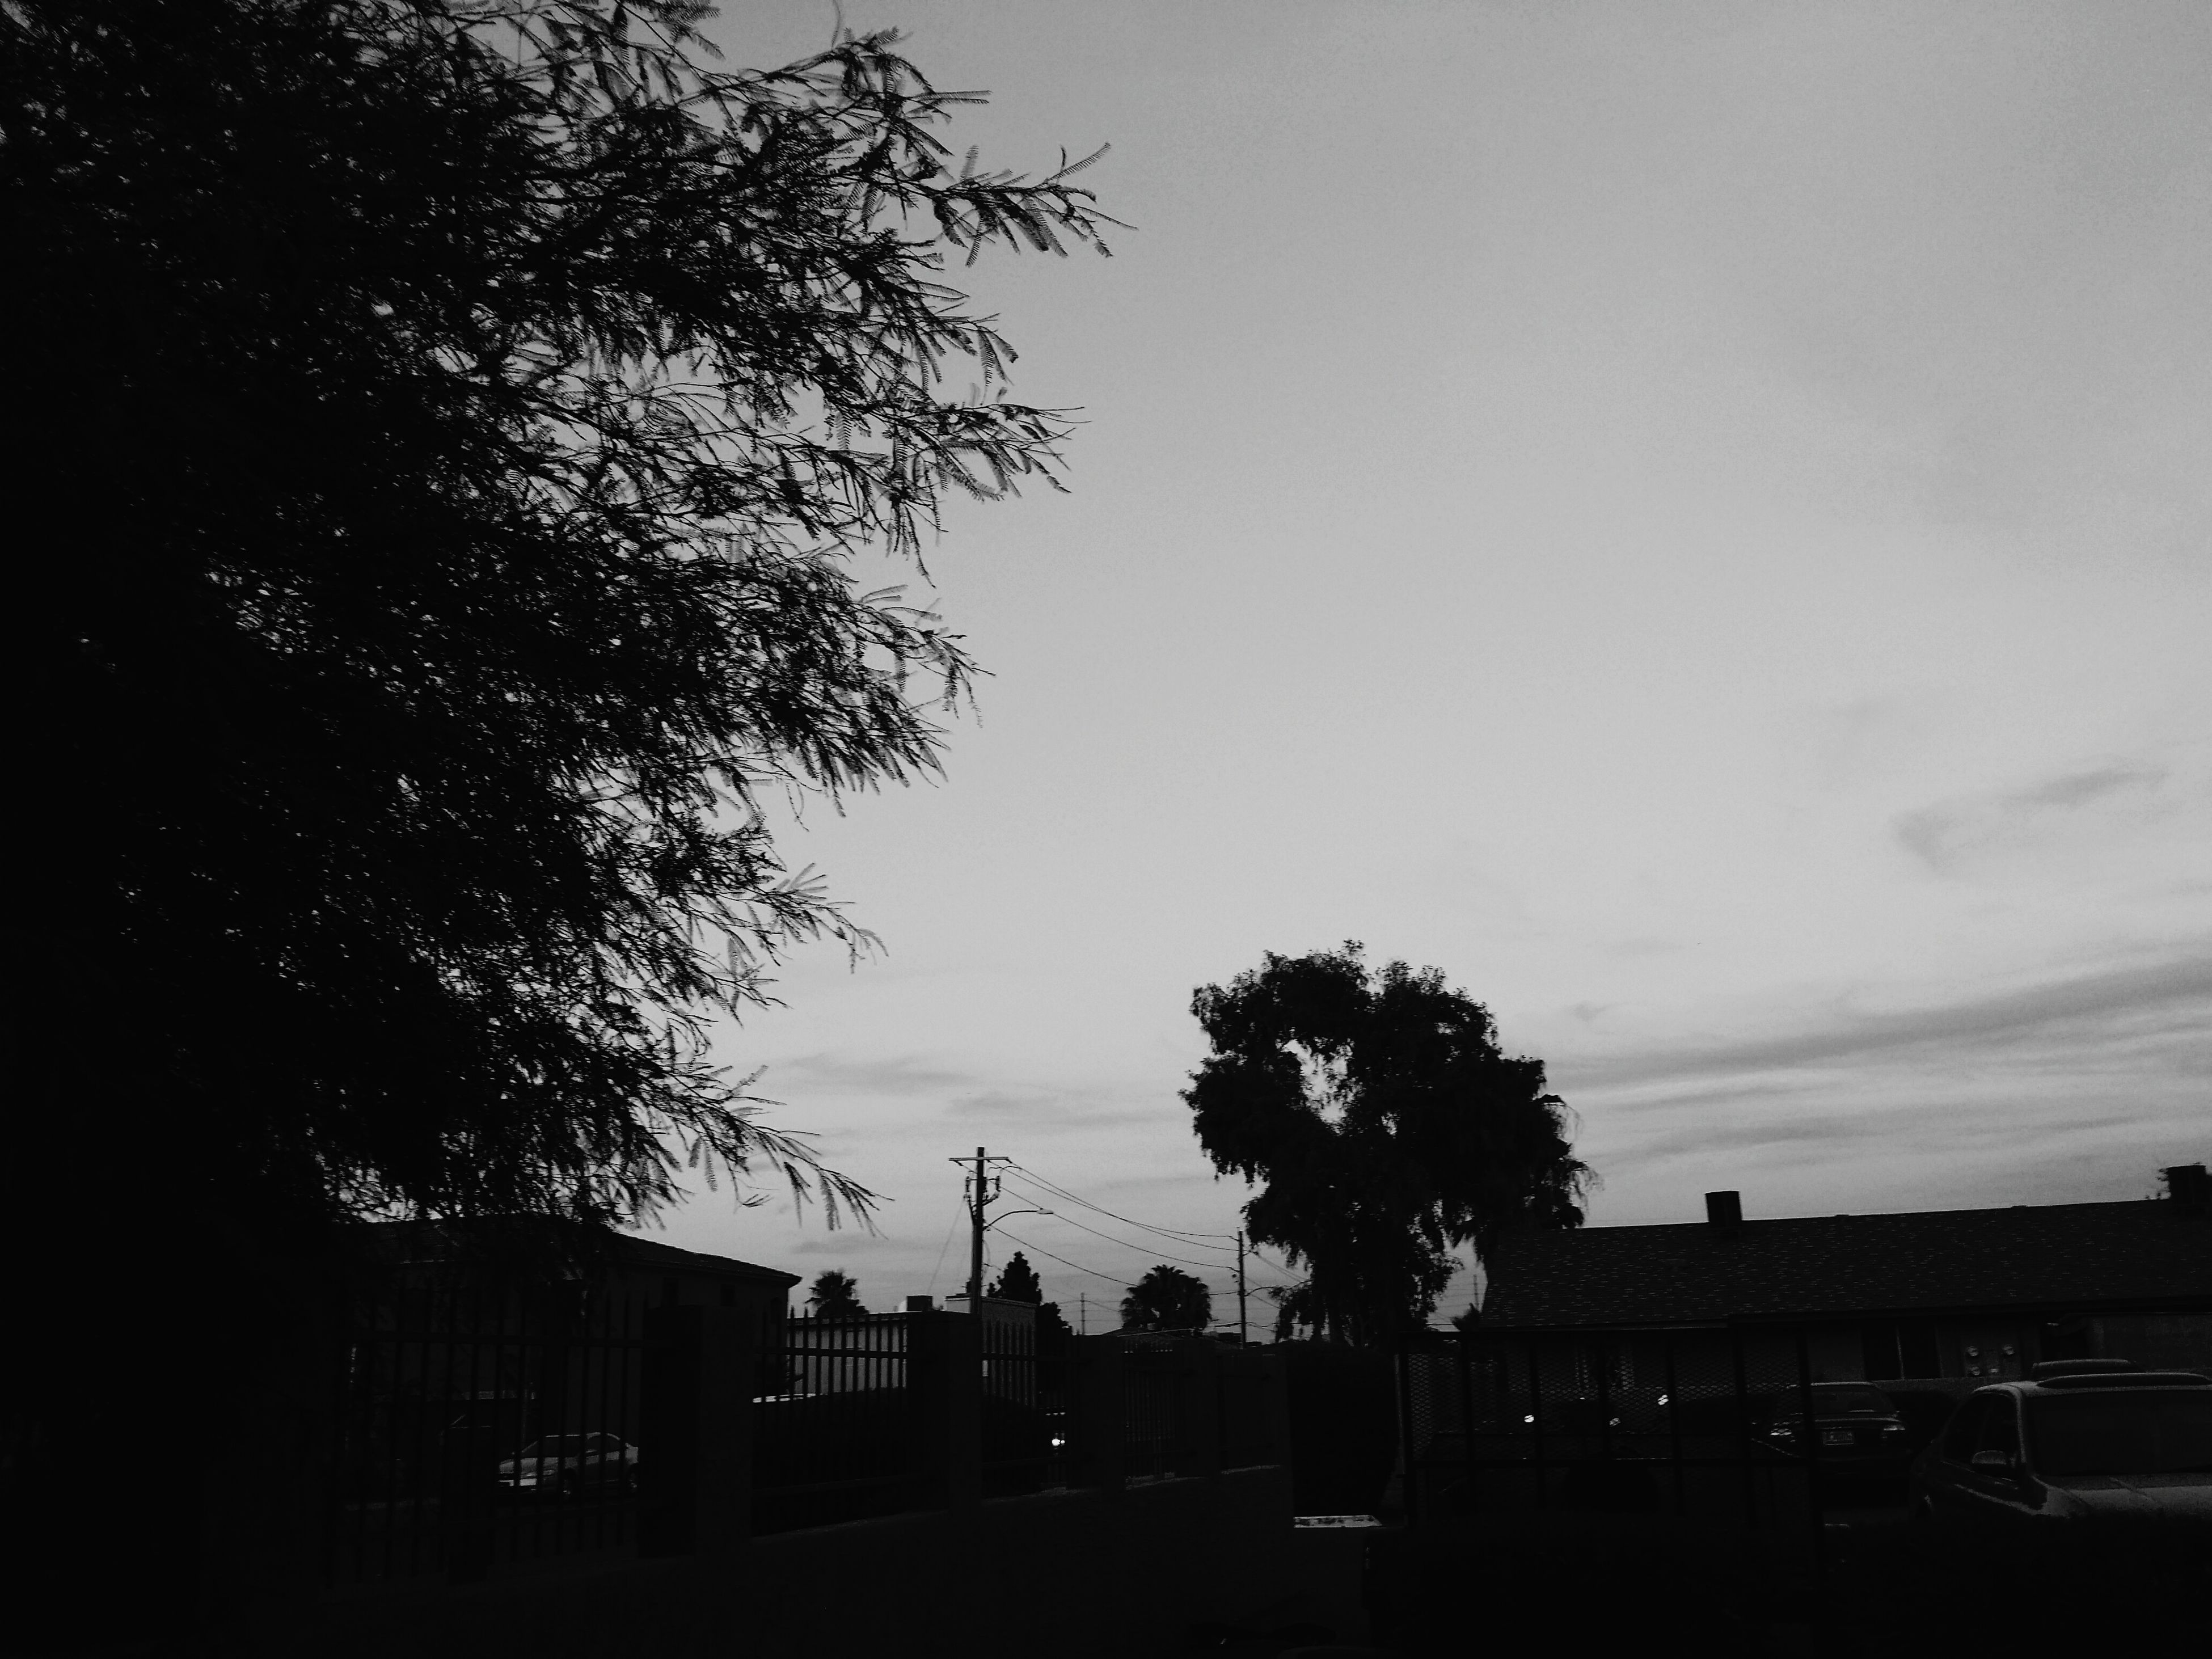 tree, building exterior, silhouette, built structure, architecture, sky, low angle view, dusk, house, sunset, city, outdoors, nature, no people, branch, growth, cloud - sky, residential structure, building, residential building